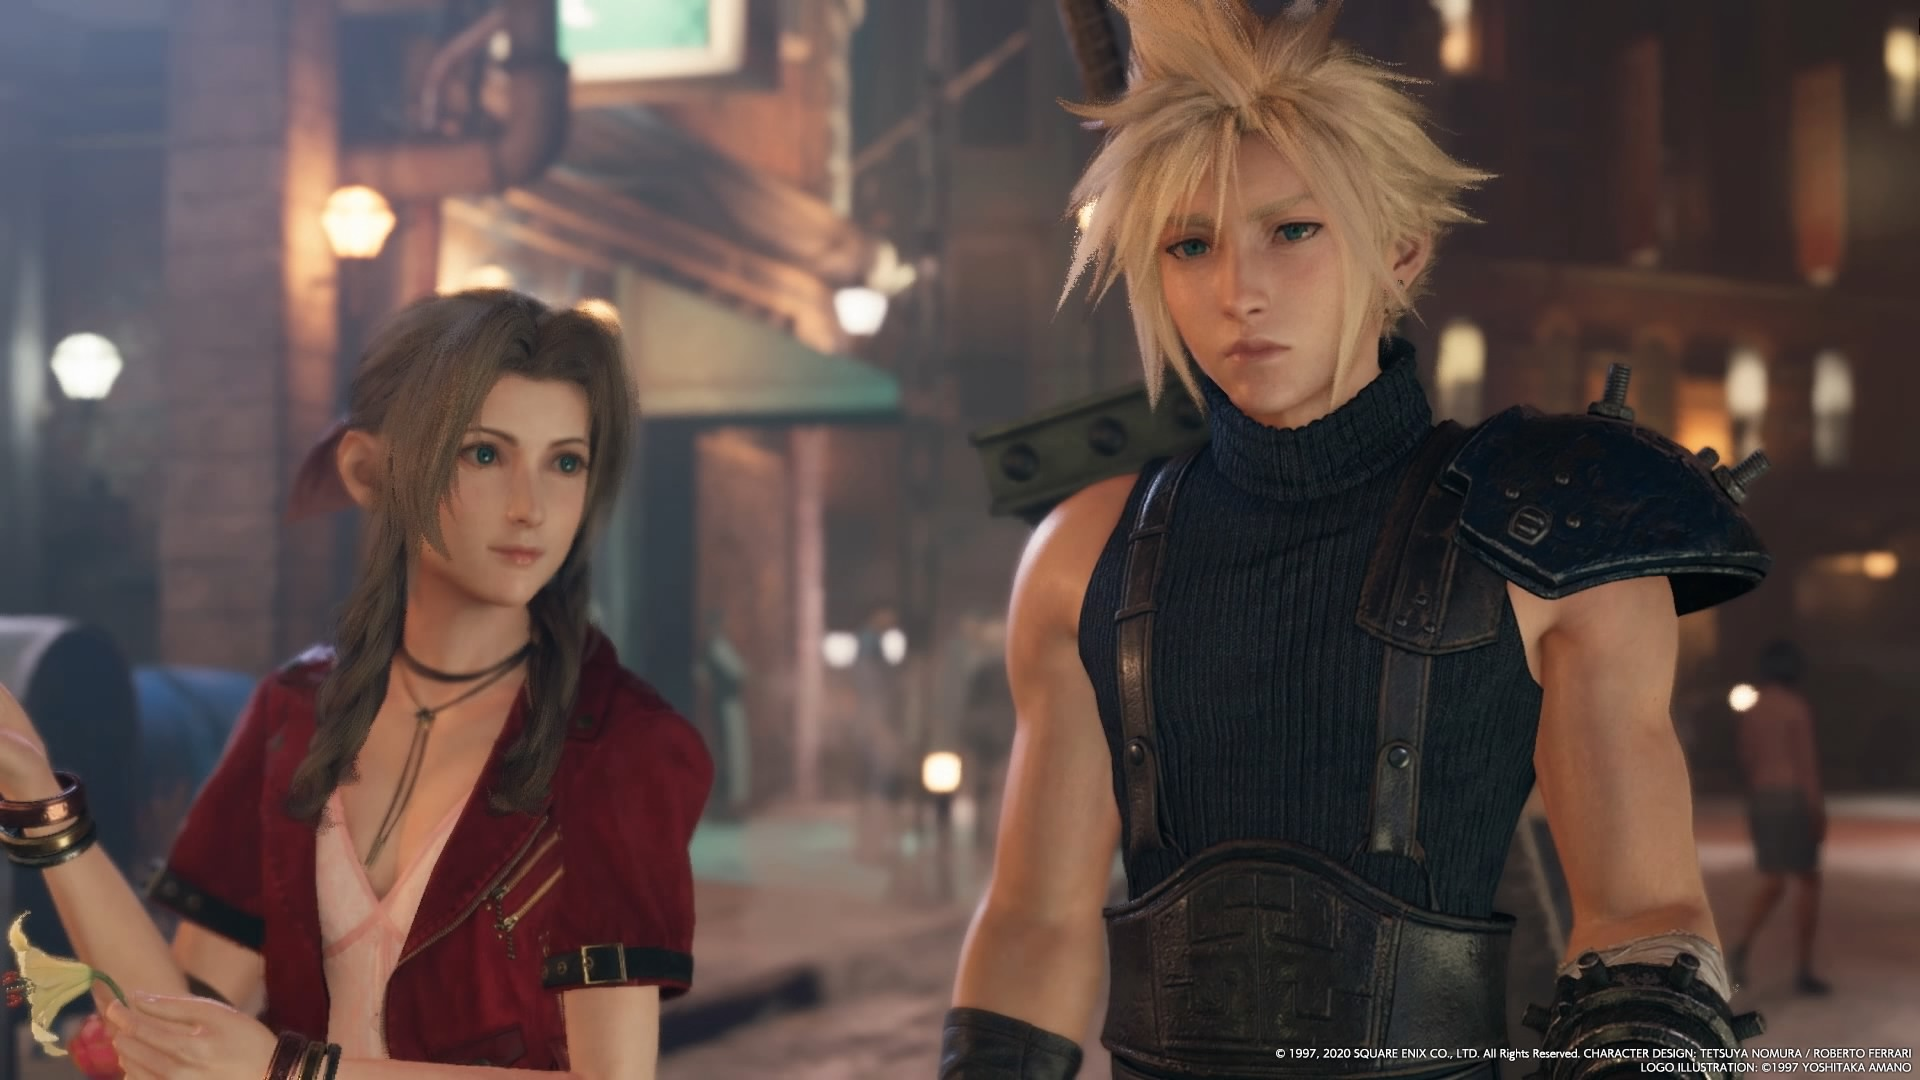 Final Fantasy VII Remake, Aerith is taking Cloud shopping for a pretty dress in Wall Market